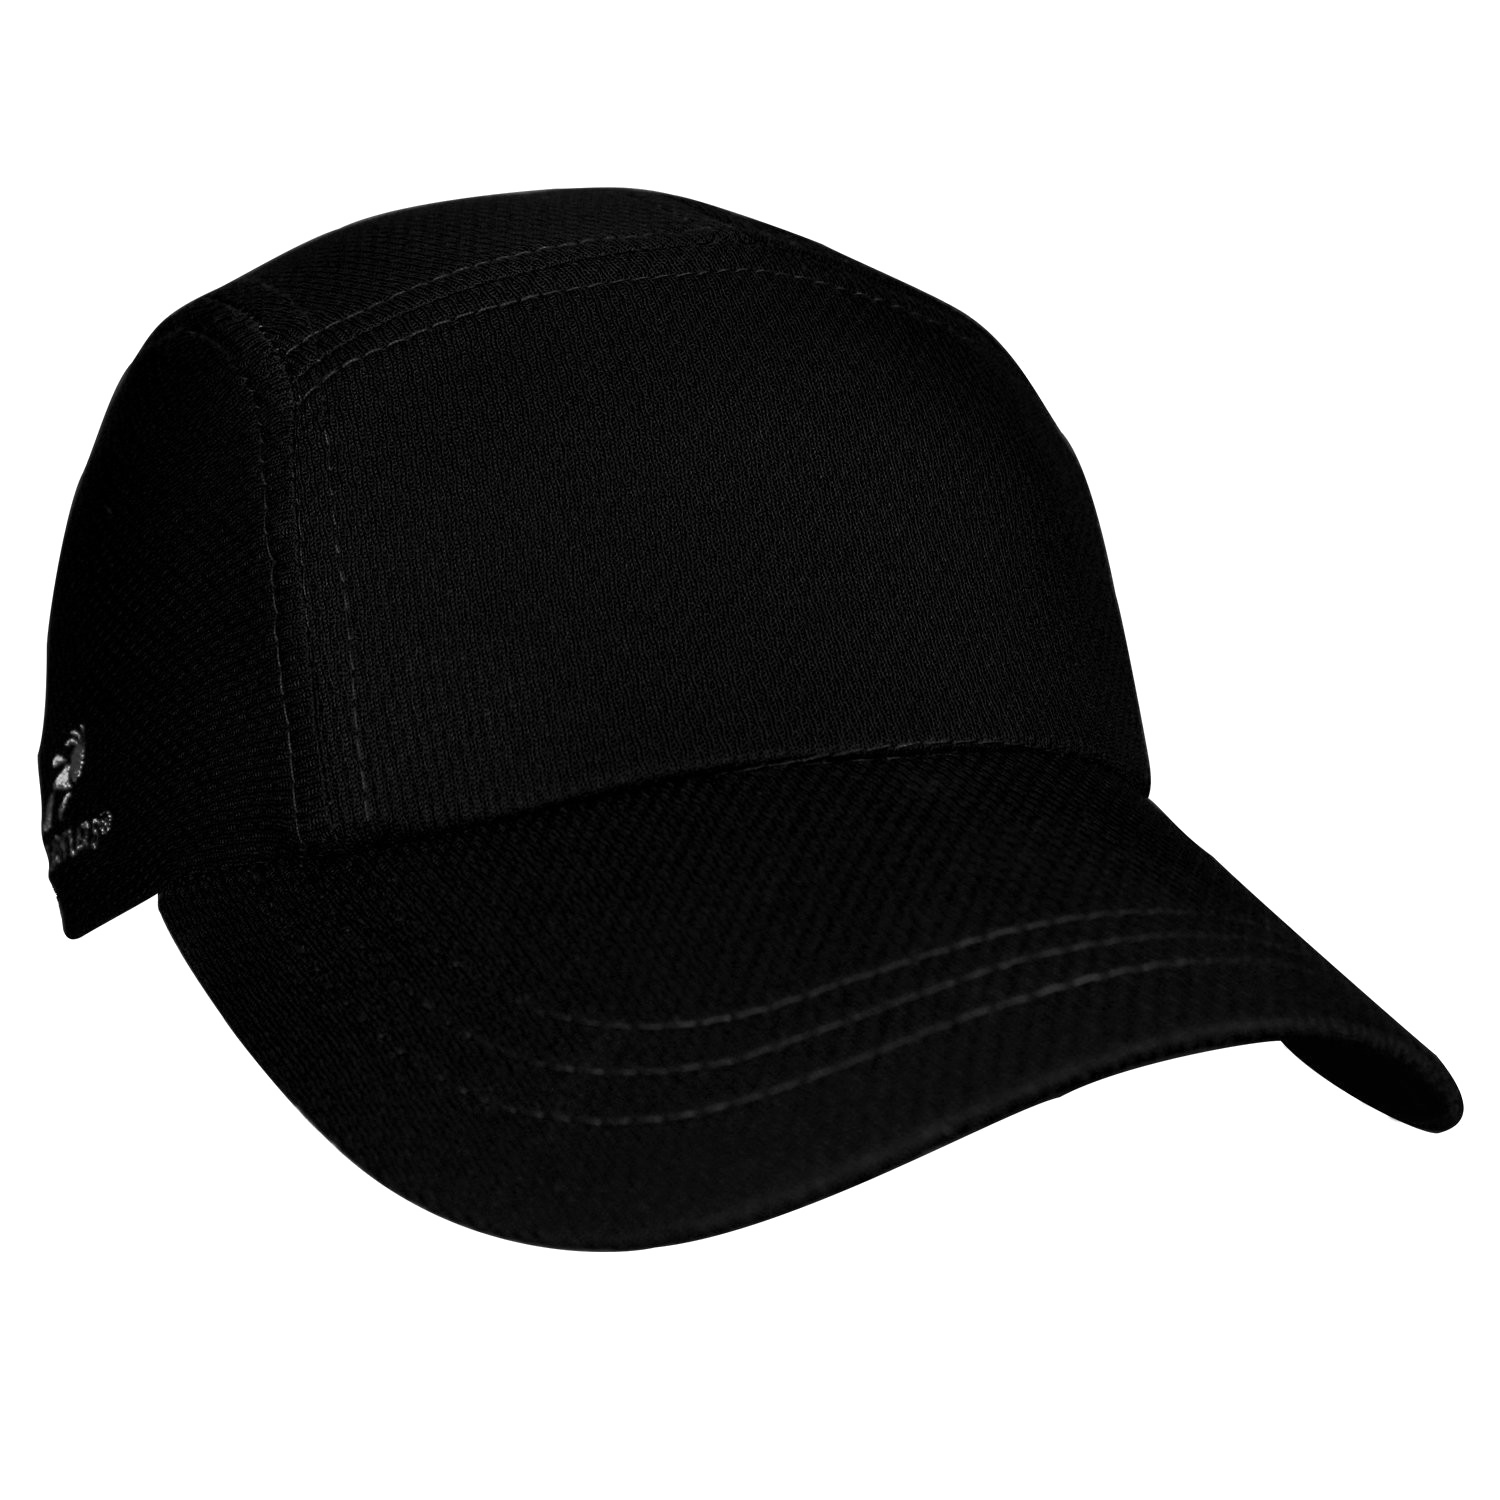 Baseball cap clipart black svg freeuse library Baseball Cap PNG Clipart | PNG Mart svg freeuse library